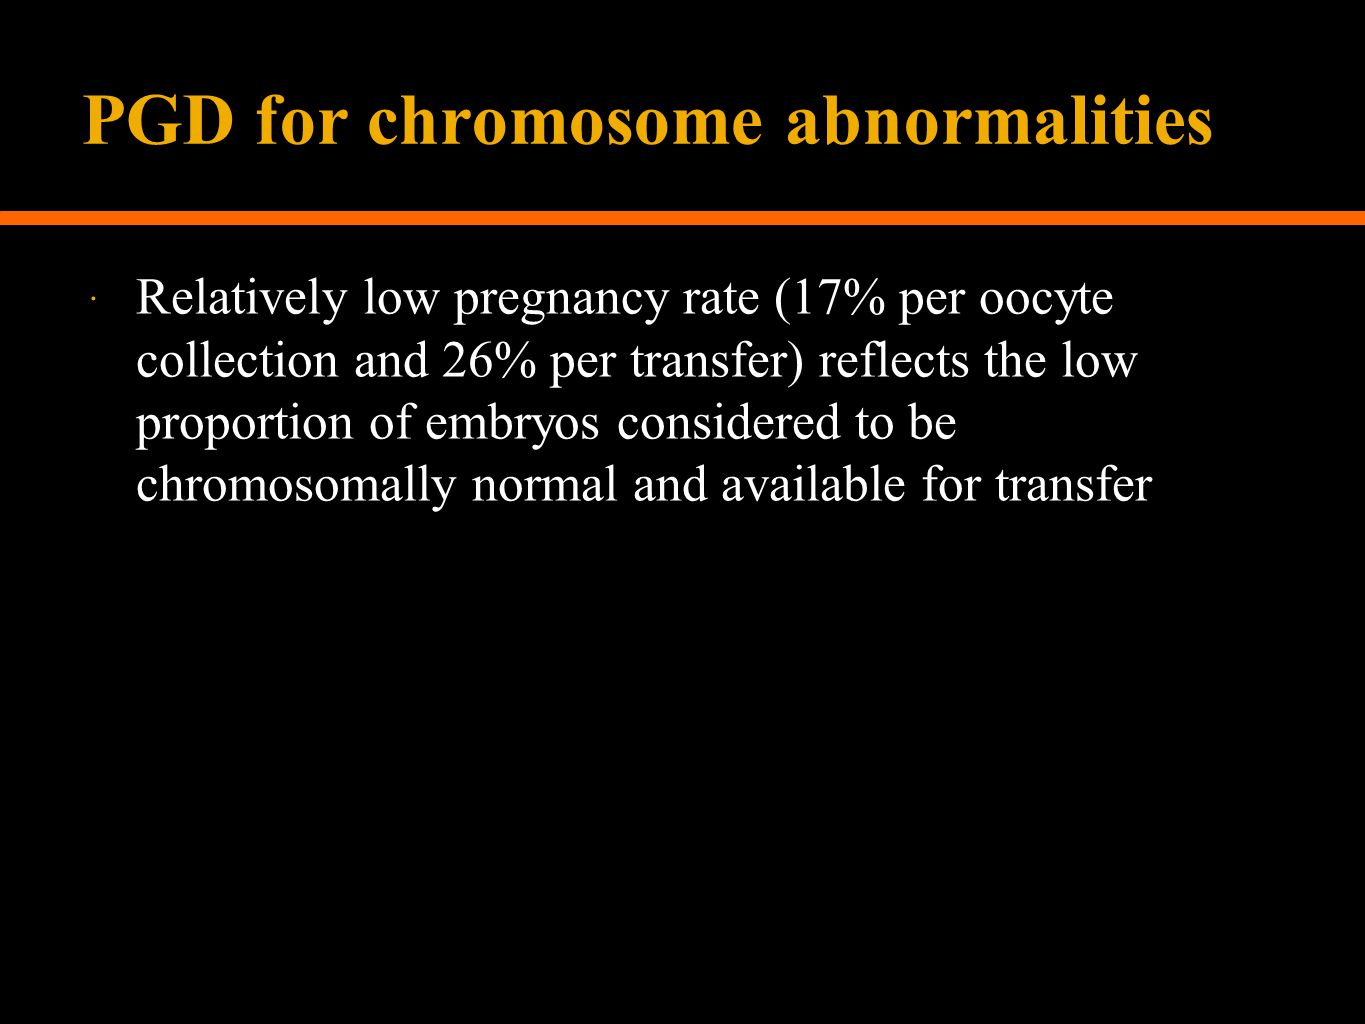 PGD for chromosome abnormalities